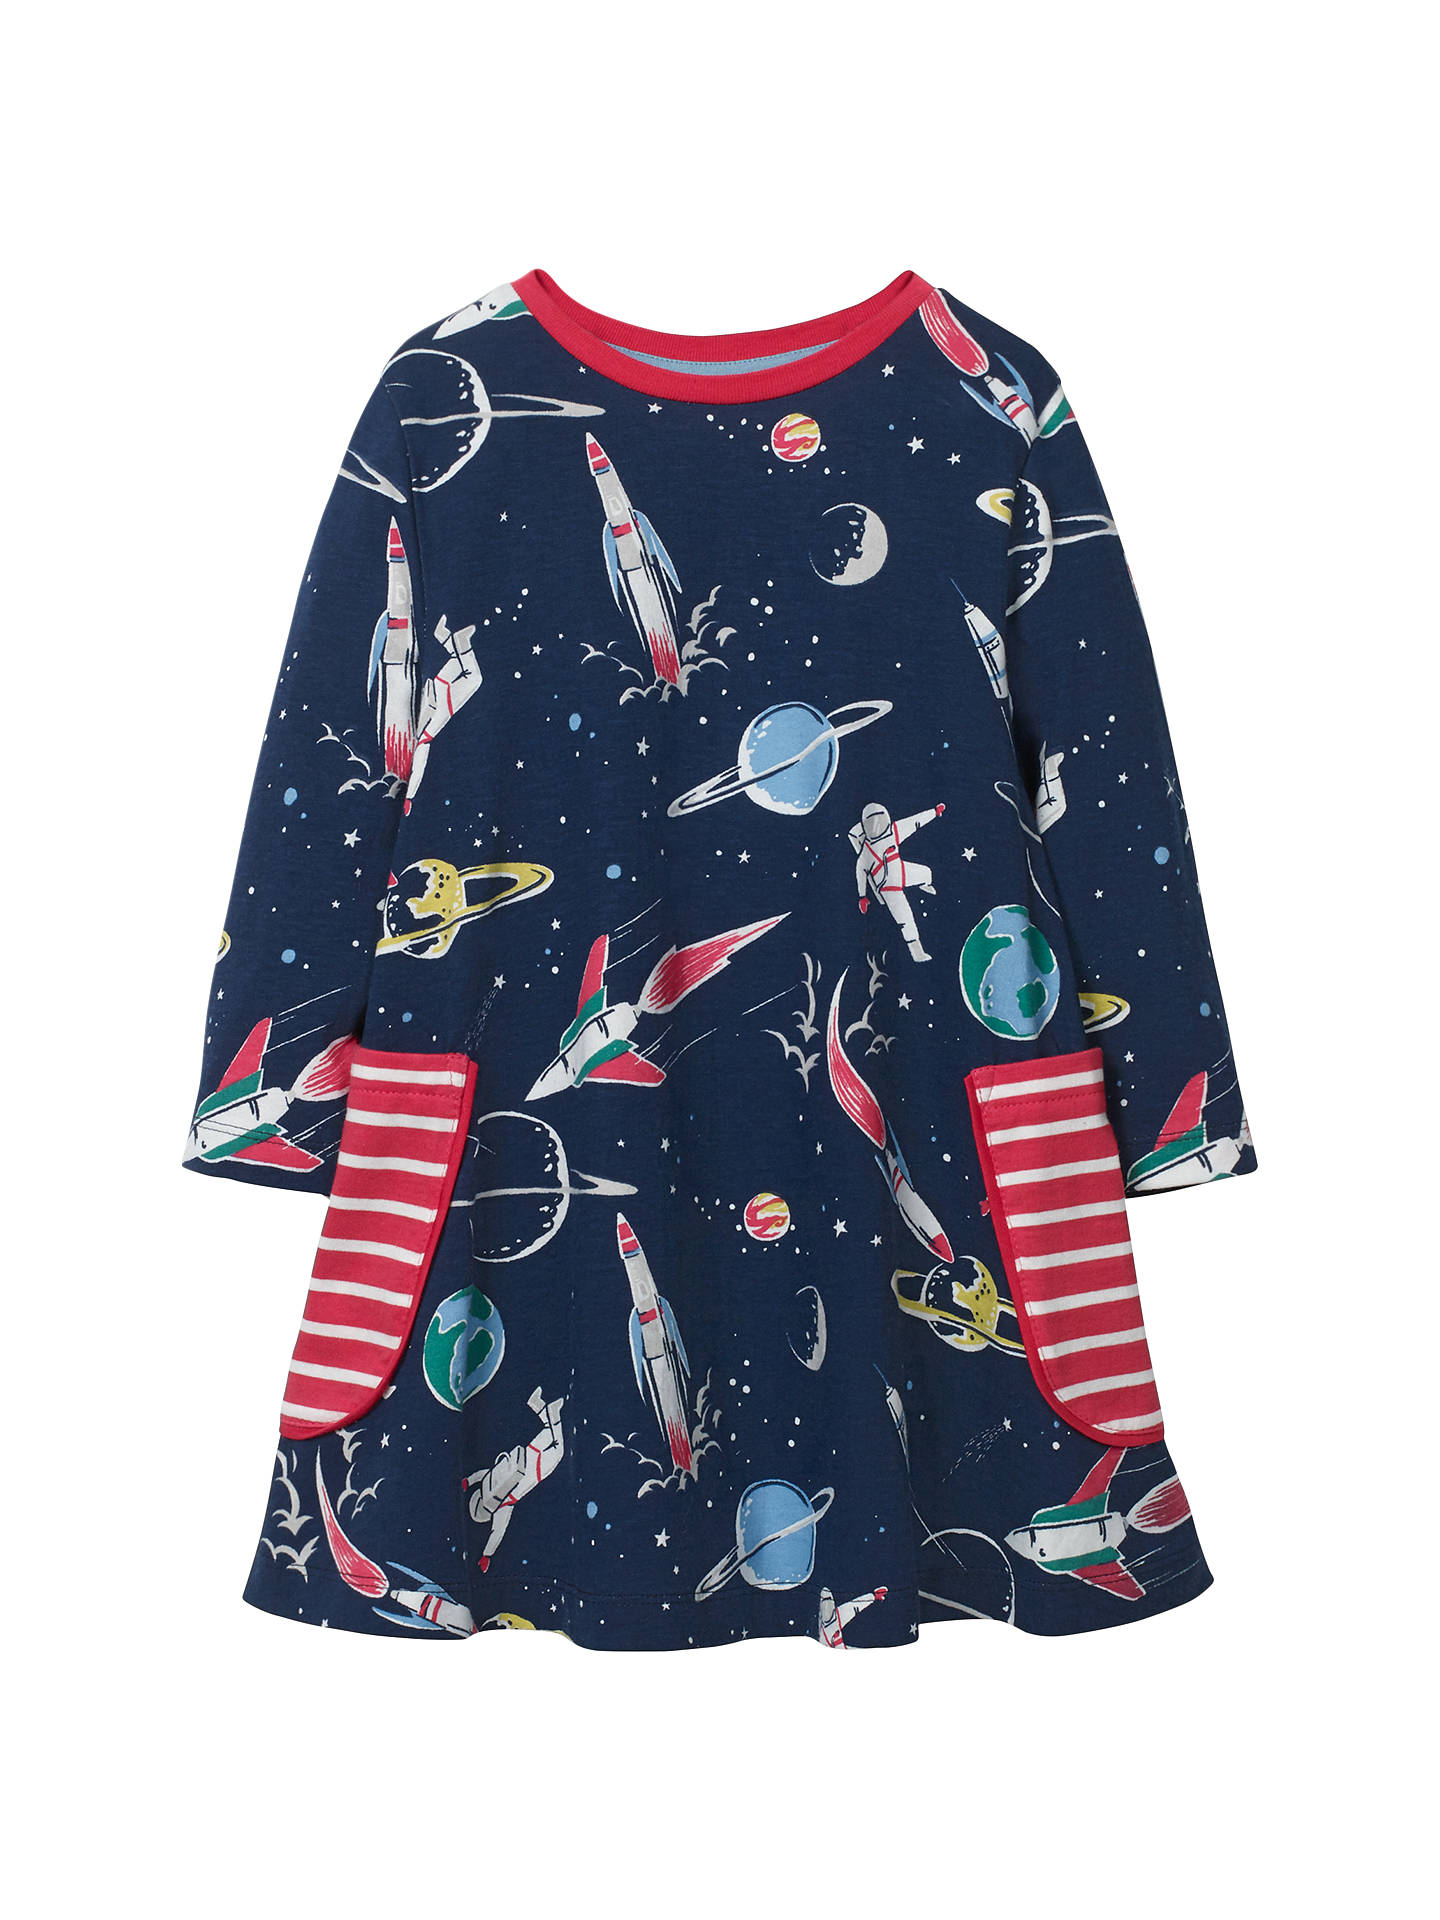 Mini Boden Girls Space Printed Tunic Dress Navy At John Lewis Tendencies Caps Pop Buymini 2 3 Years Online